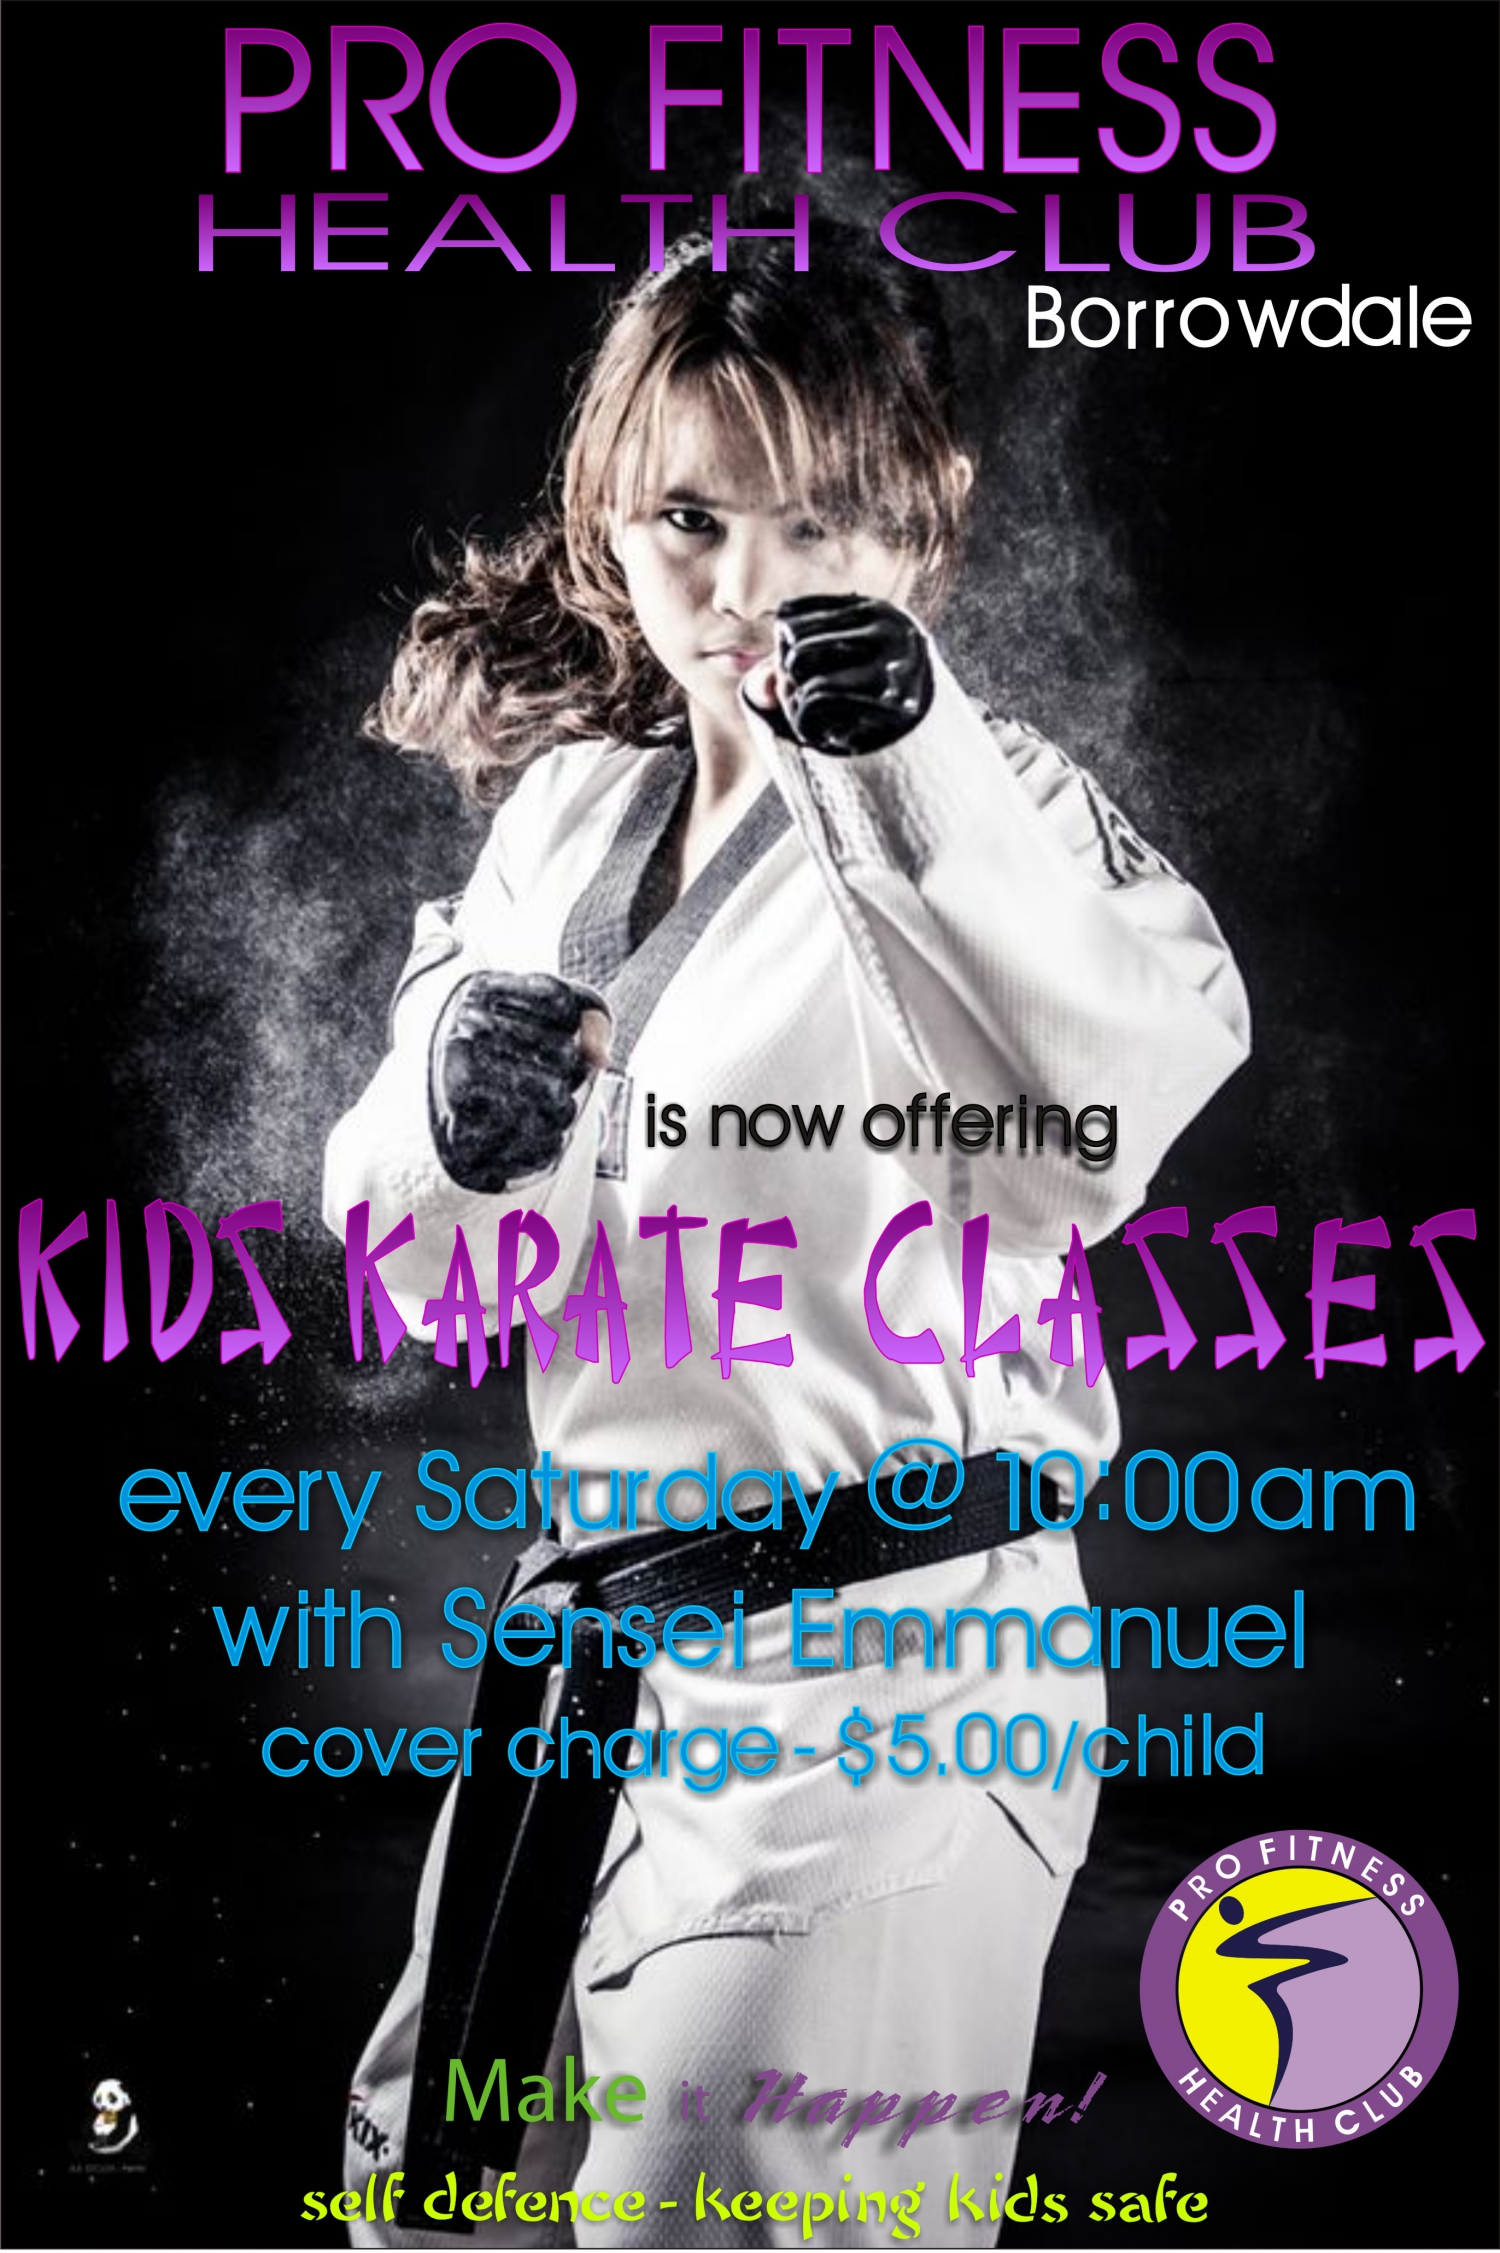 Kids Events At Pro Fitness Health Club Borrowdale